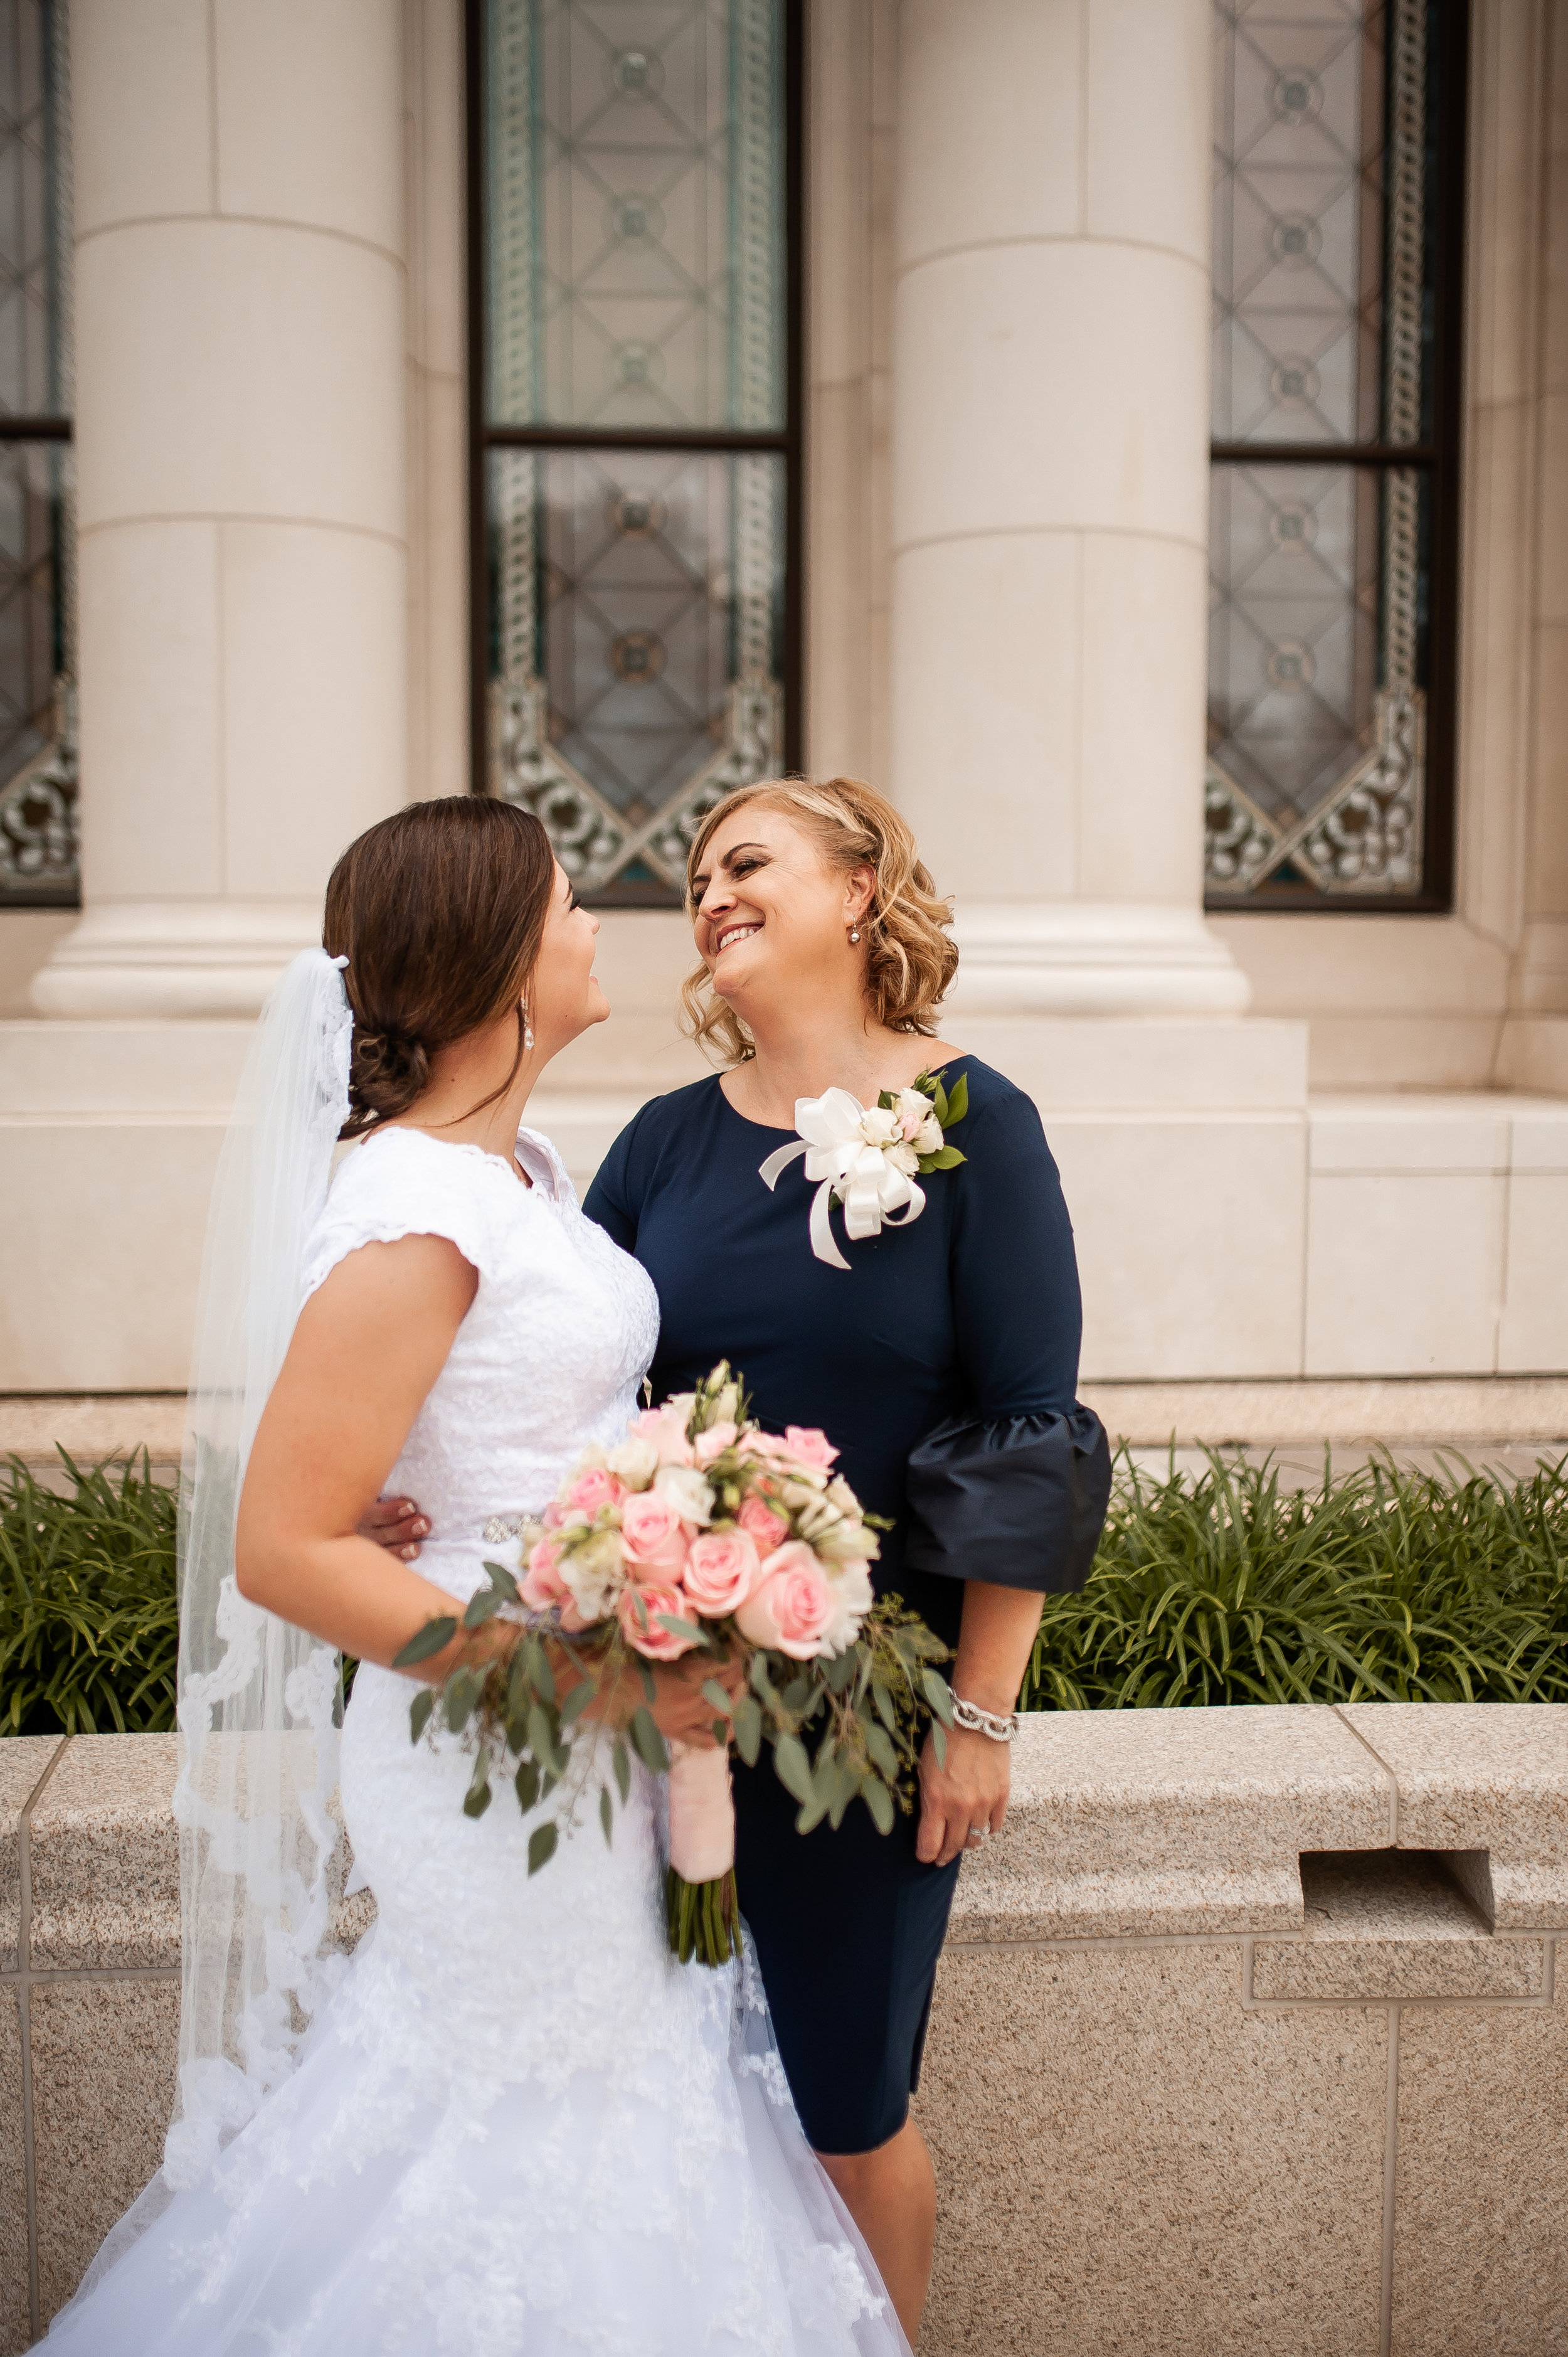 Bride & Mom sharing a sweet moment.